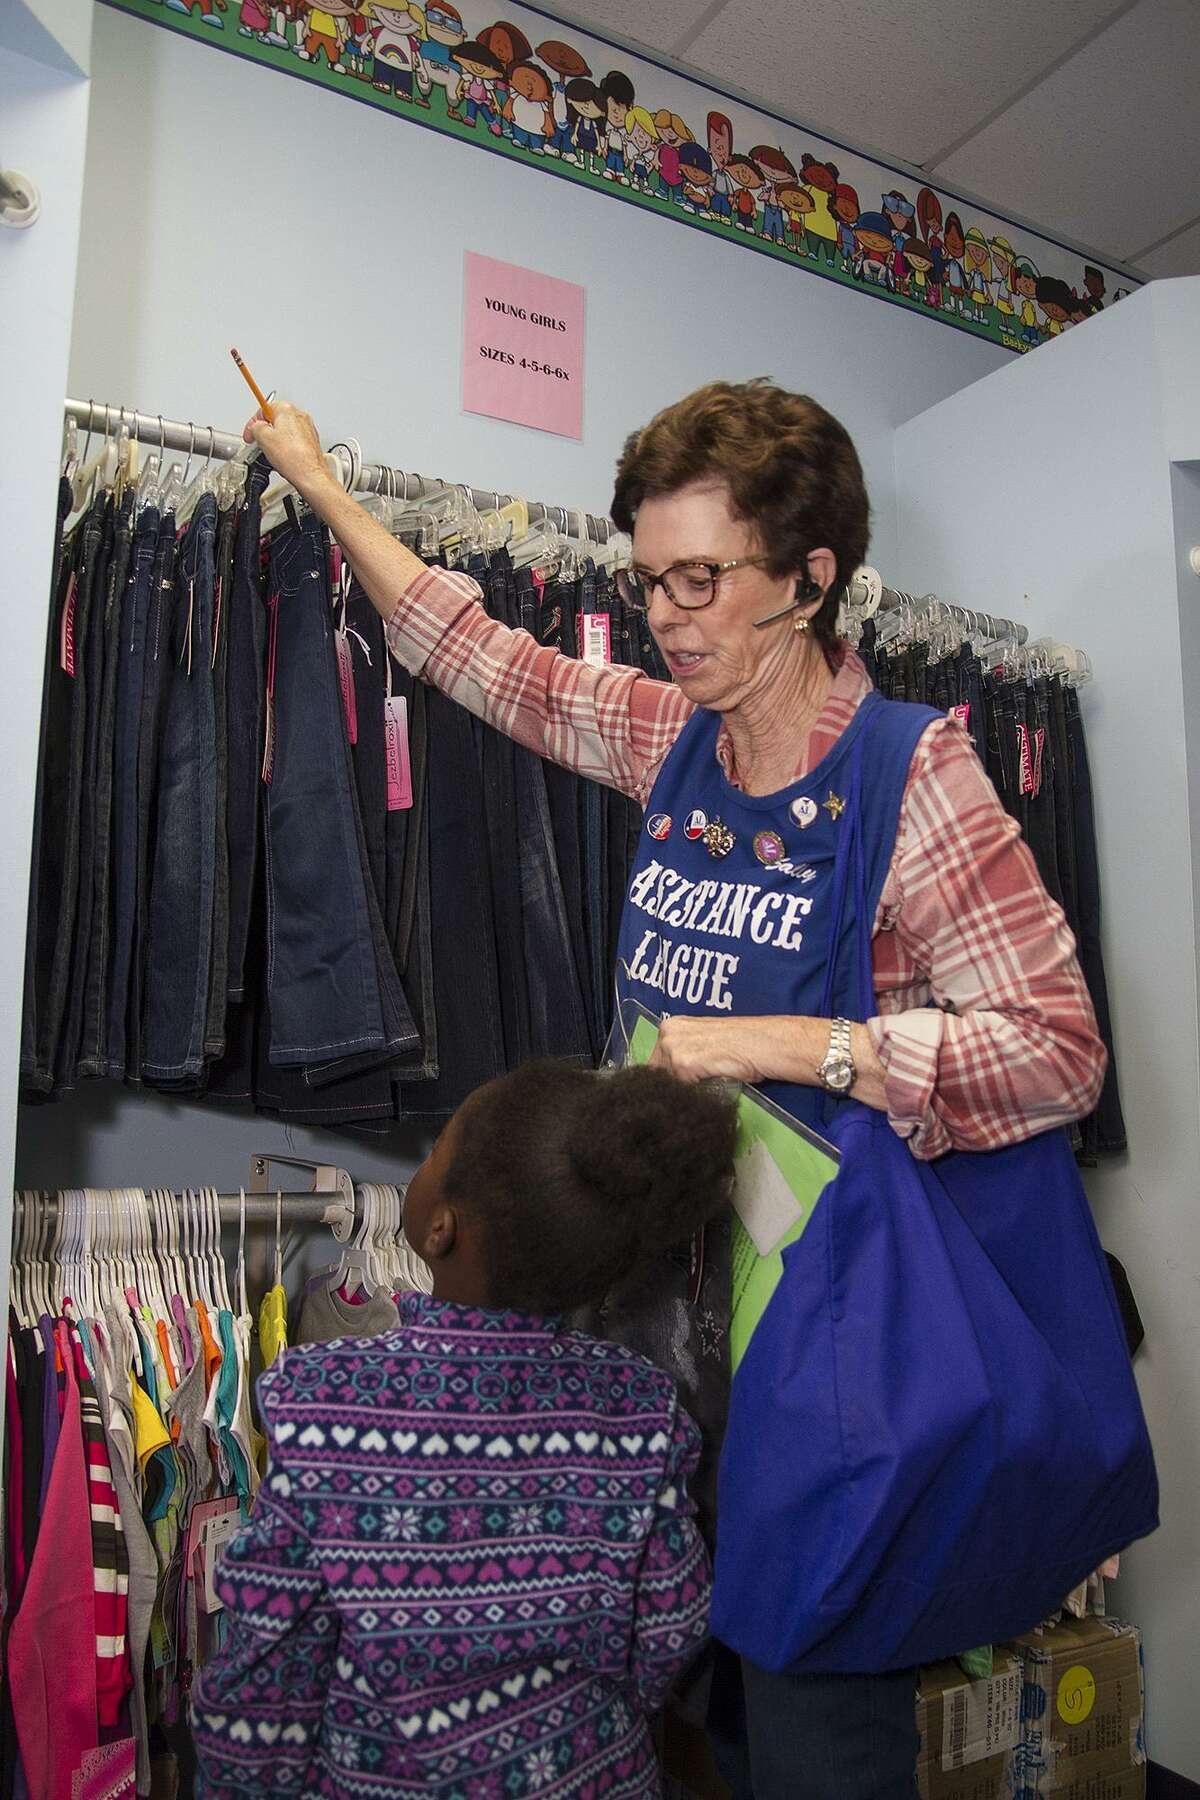 Assistance League volunteer Sally Tietz helps a child pick out clothes as part of Operation School Bell.